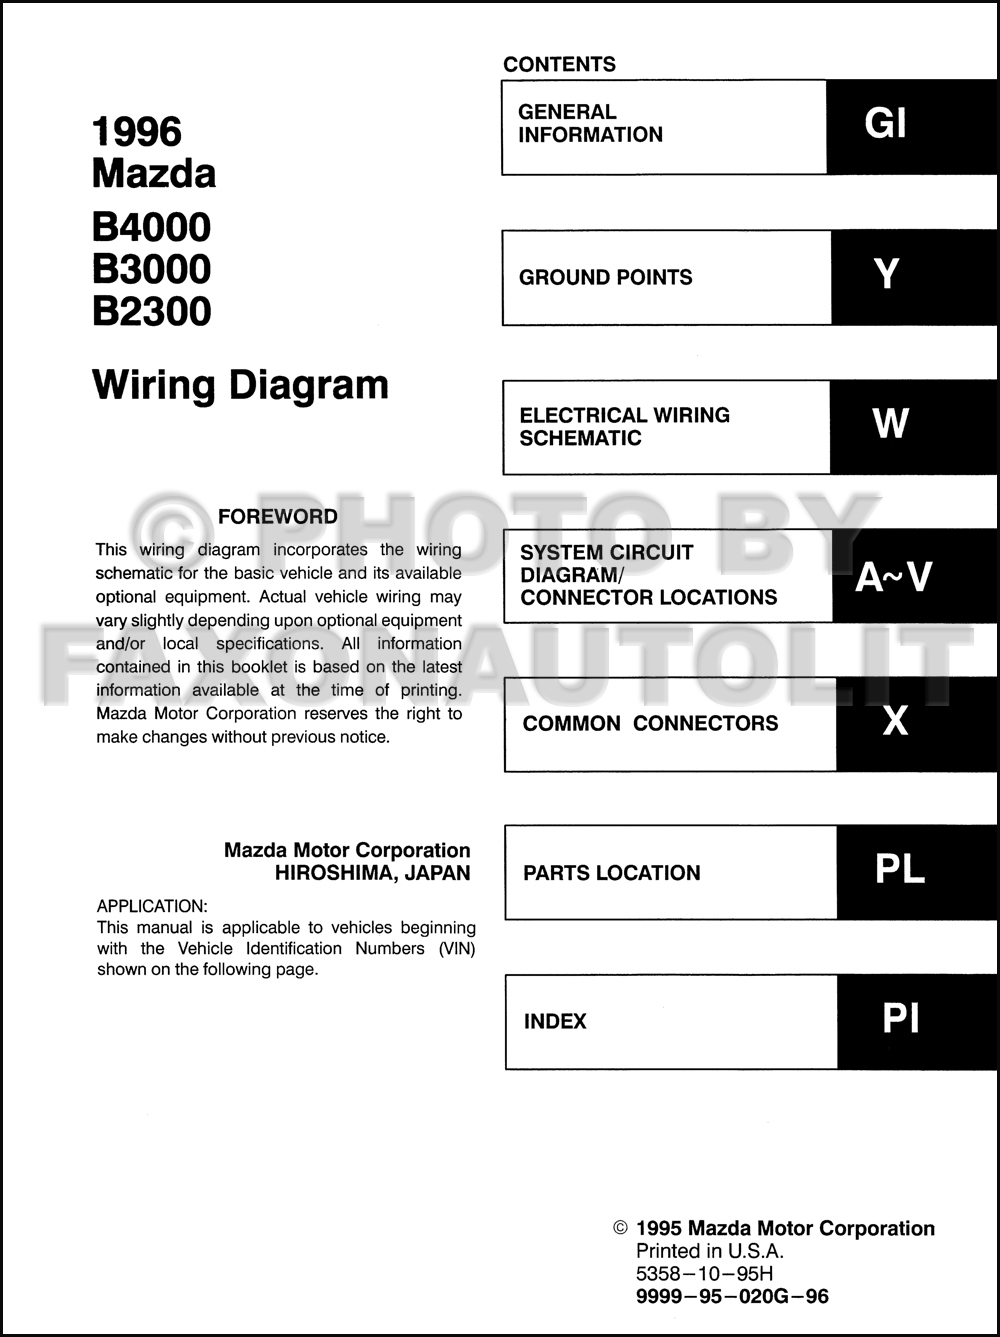 Mazda B4000 Wiring Diagram Maf Daily Update Truck 1984 International S2300 1996 B 4000 Stereo 09 5 Radio